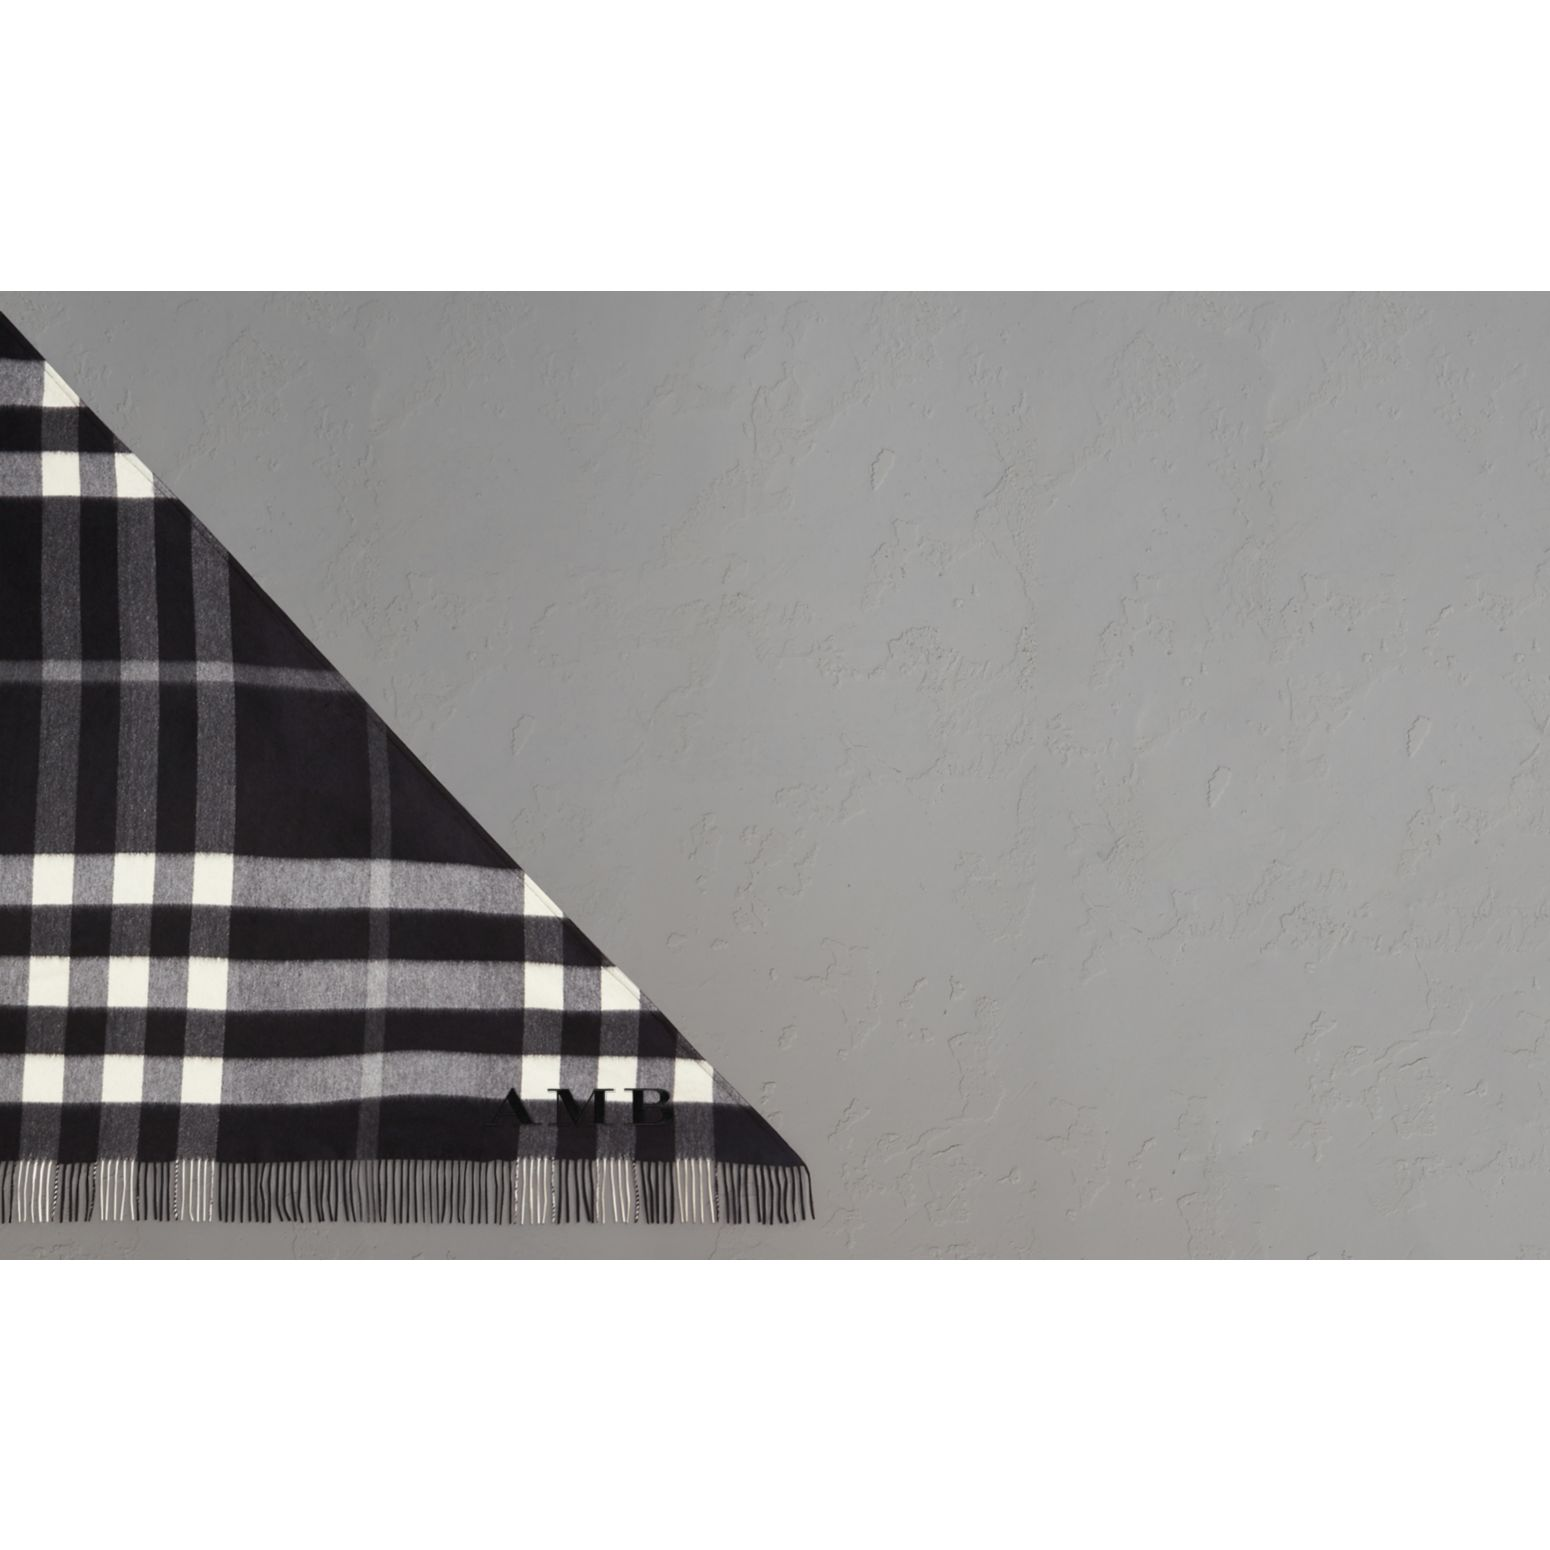 The Burberry Bandana in Check Cashmere in Black | Burberry Australia - gallery image 2